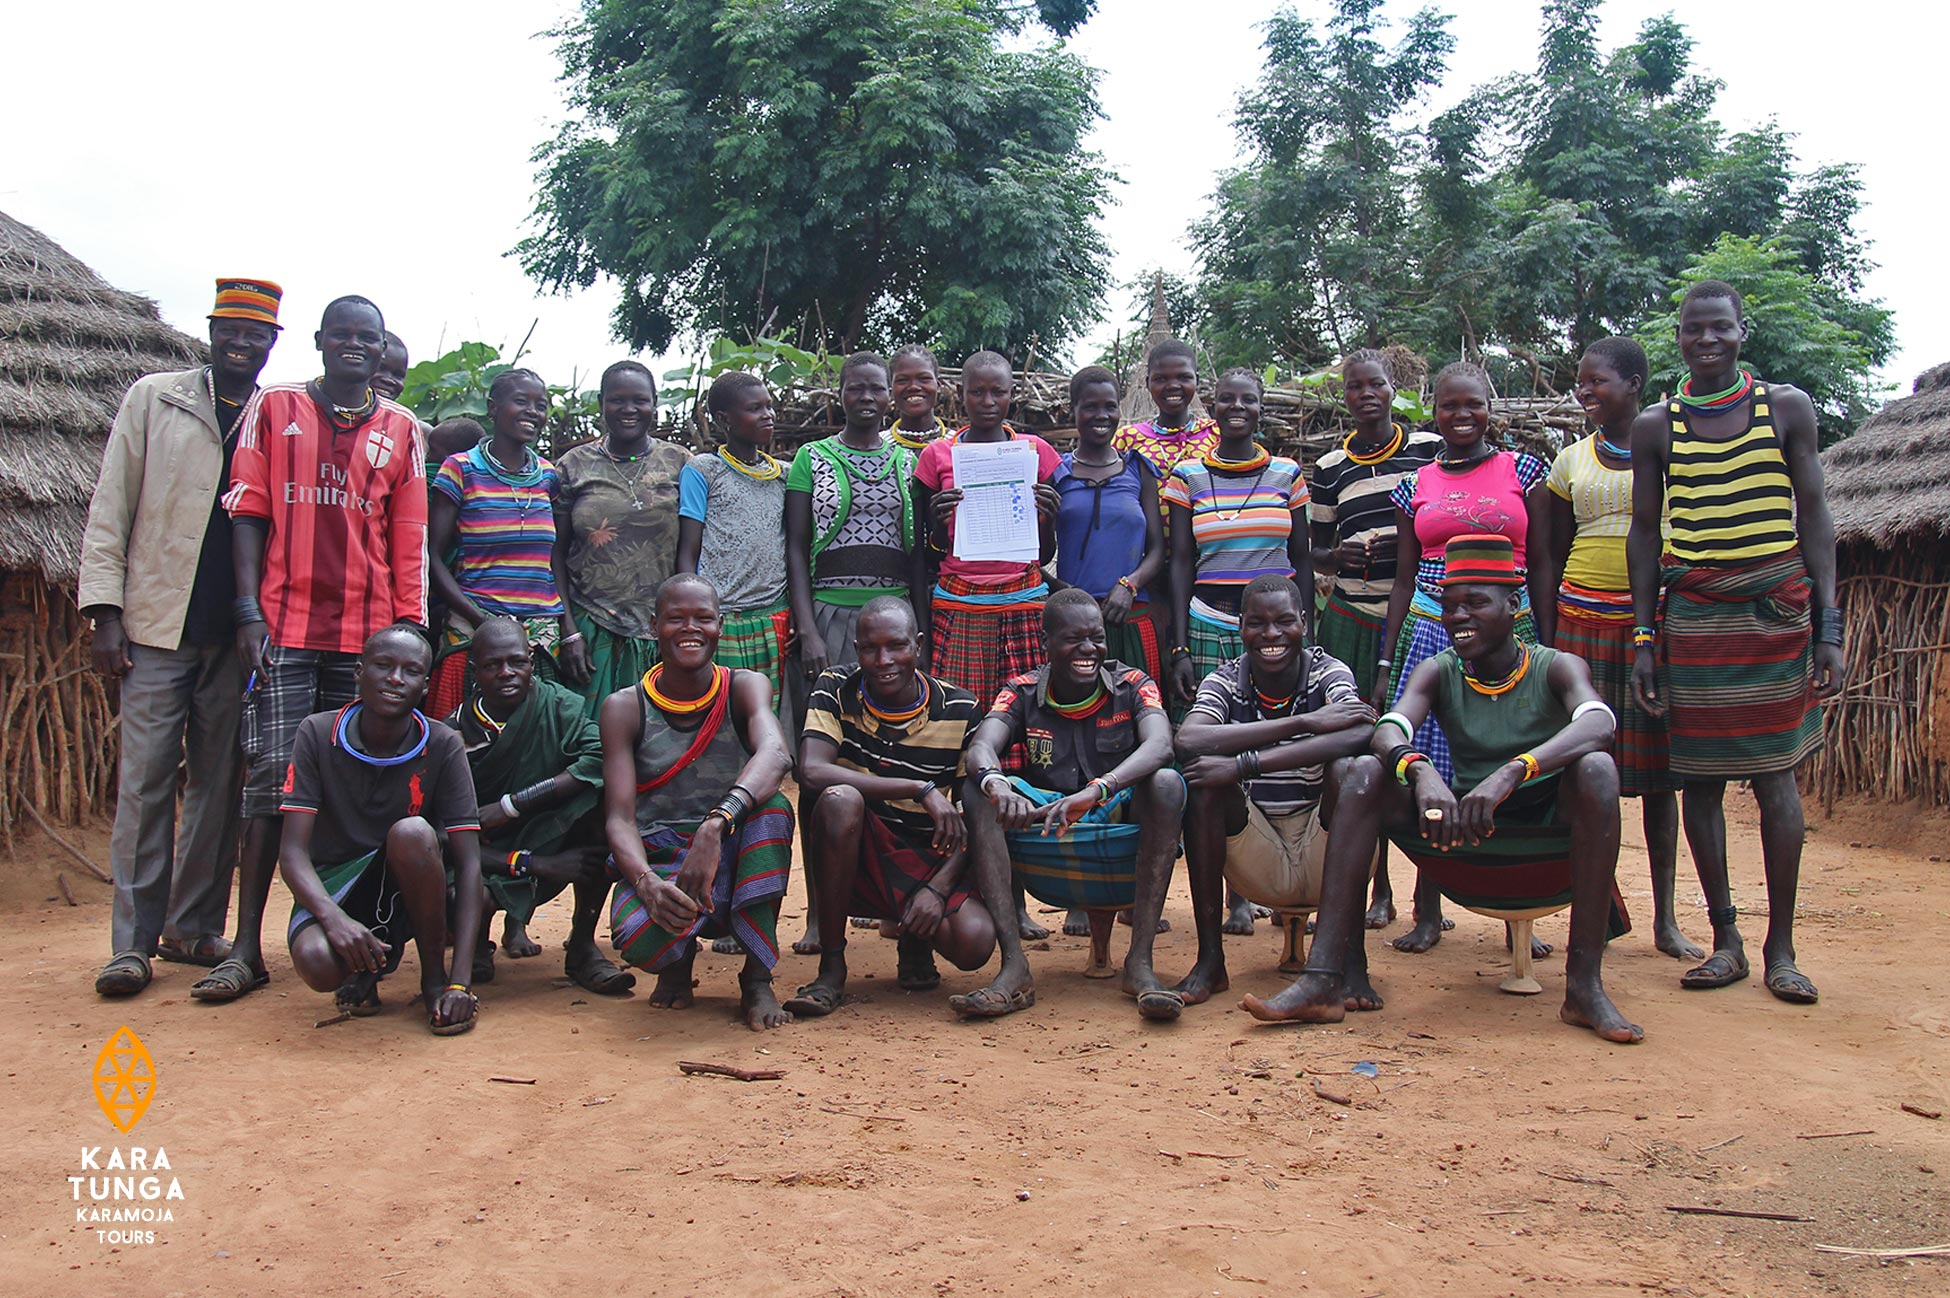 Kara-Tunga Karamoja Community Village Tours